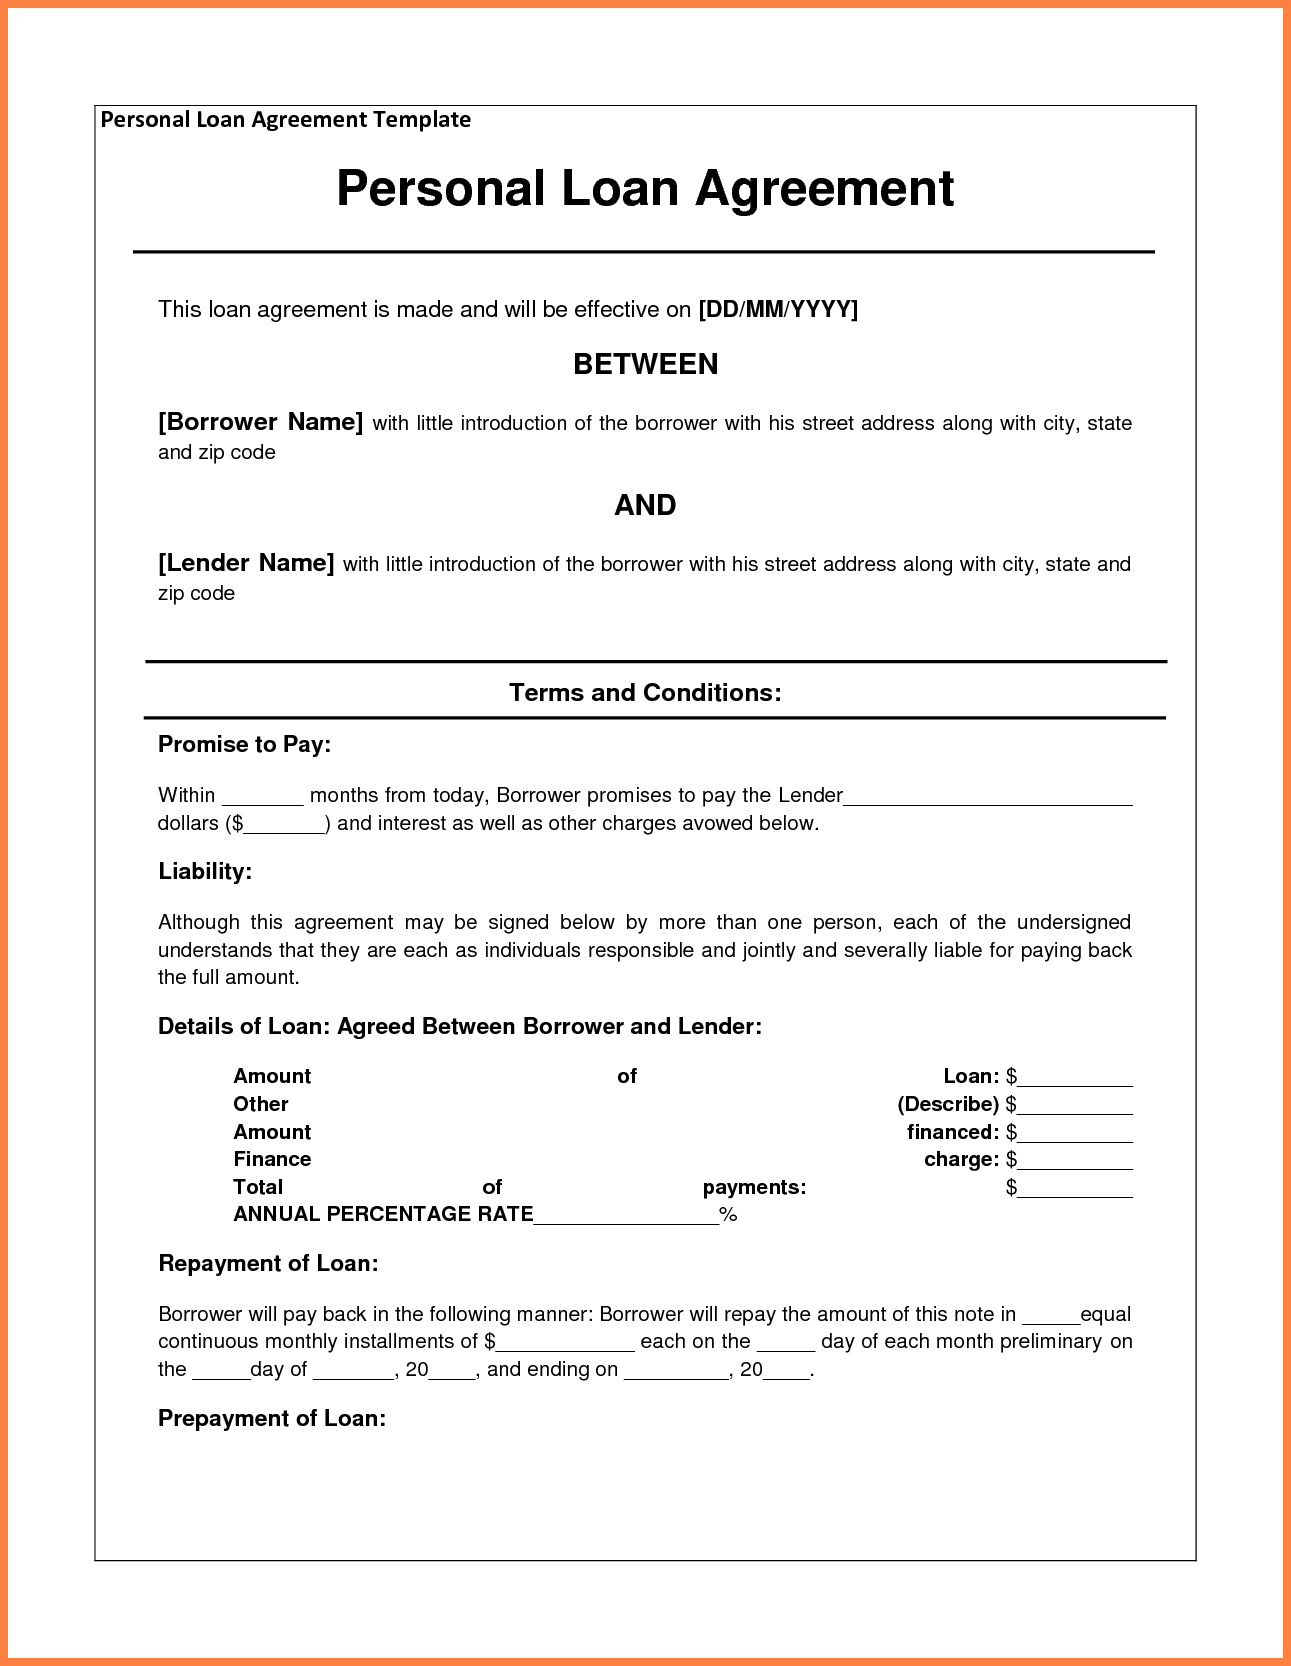 000 Frightening Personal Loan Agreement Template Idea  Contract Free Word Format South AfricaFull